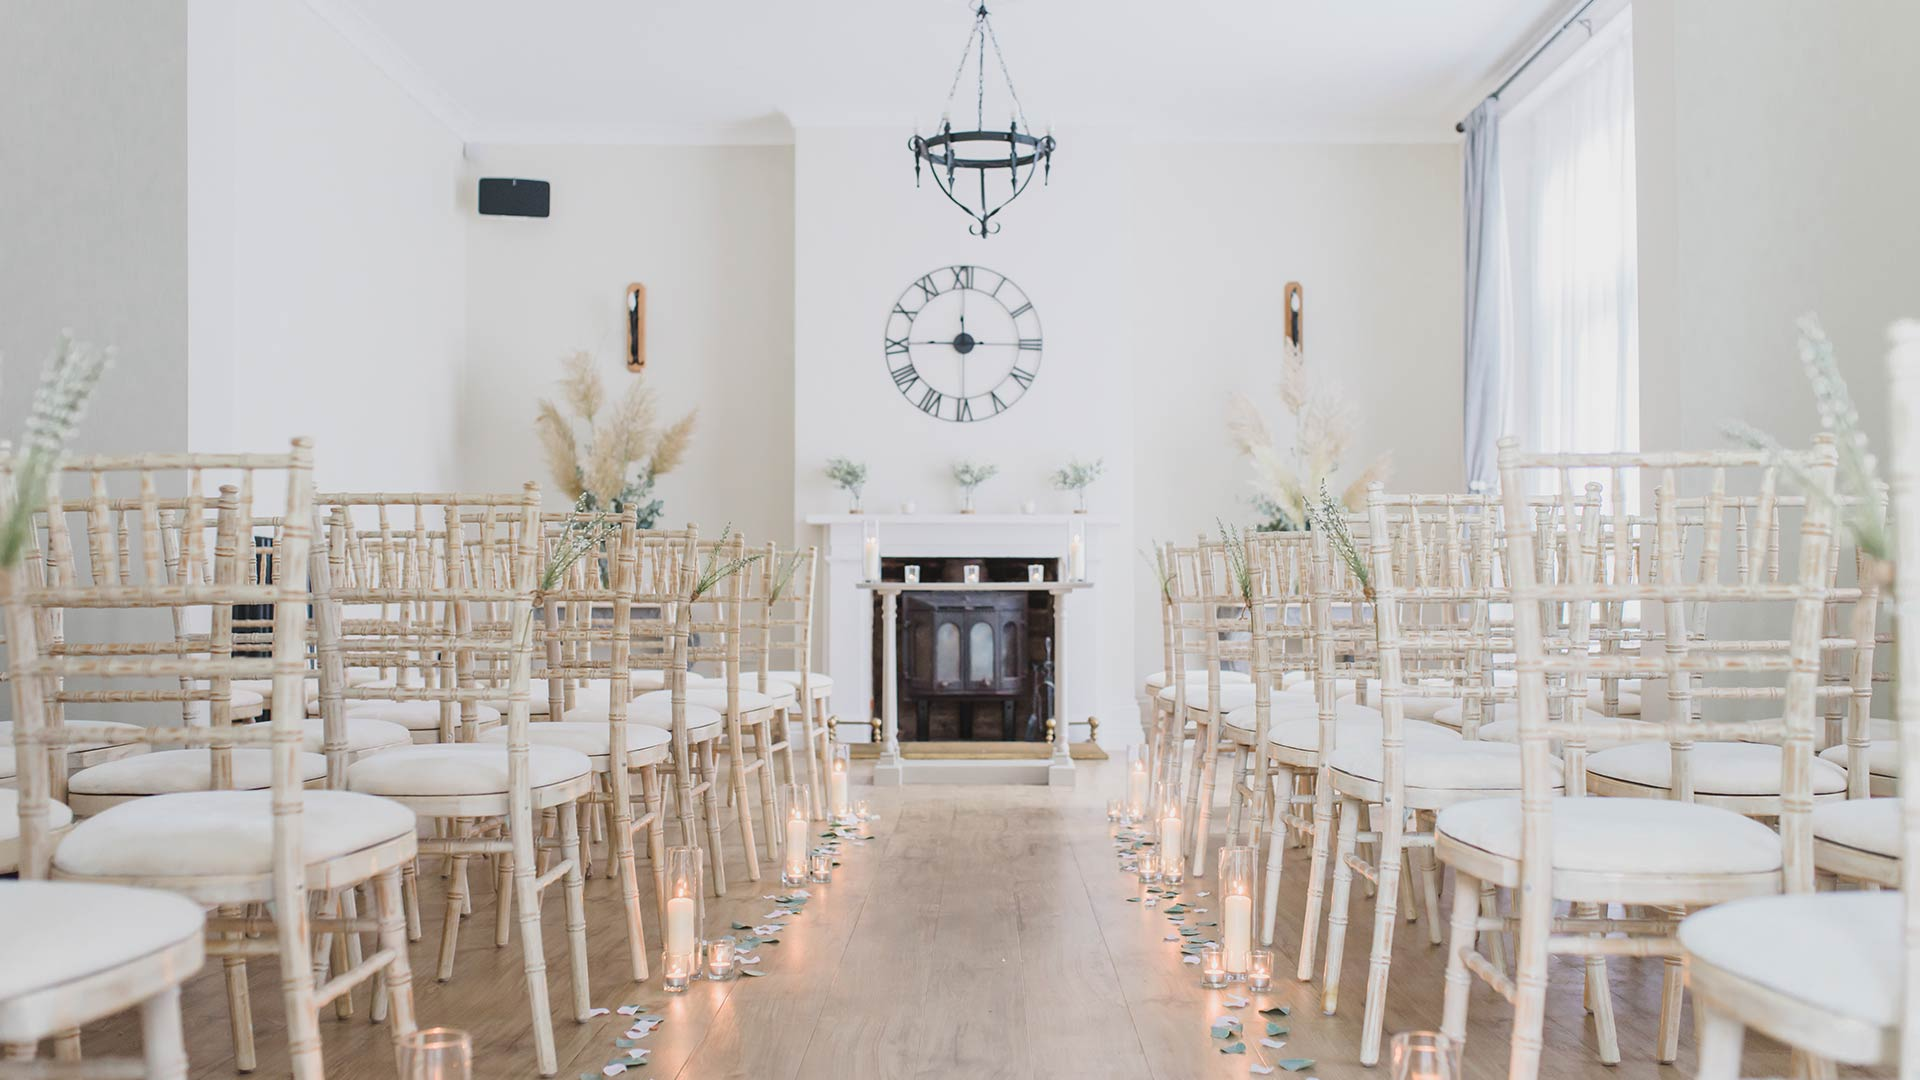 The-old-rectory-wedding-venue-header